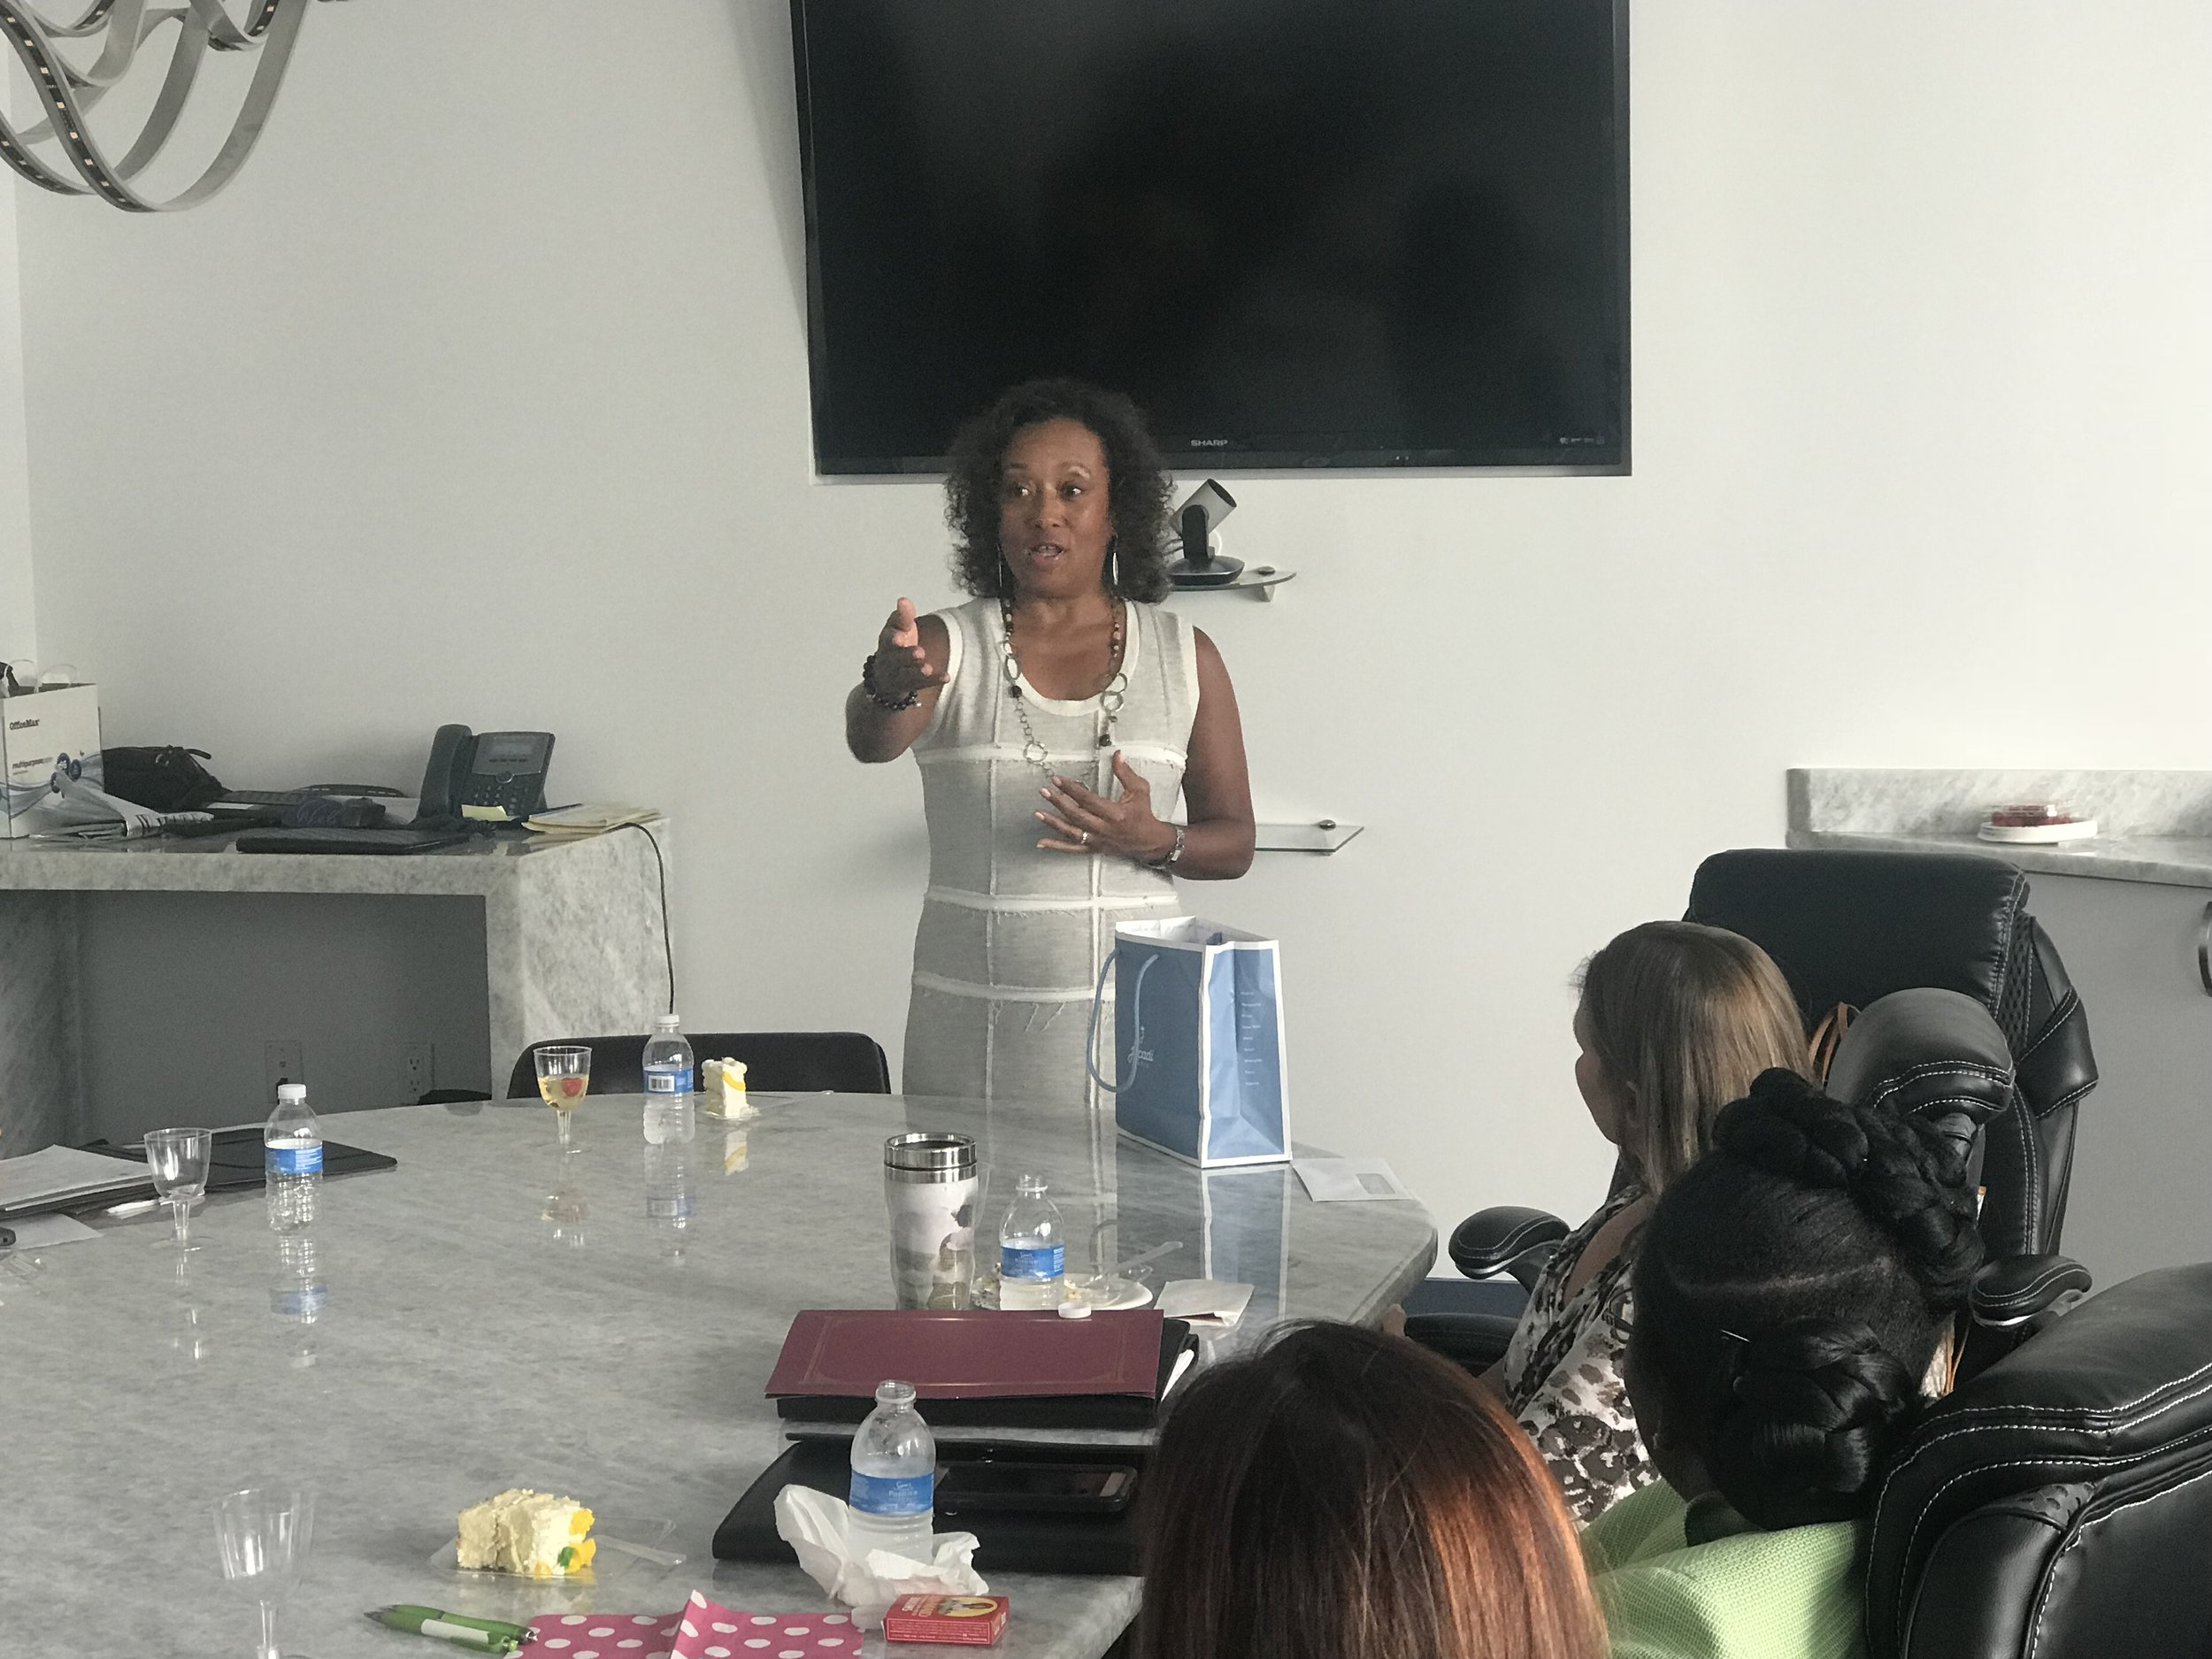 Diana Riley of Swinging With a Purpose speaks to the Dress for Success SW Florida WETES Graduates at Welch Companies of Florida on August 21, 2018